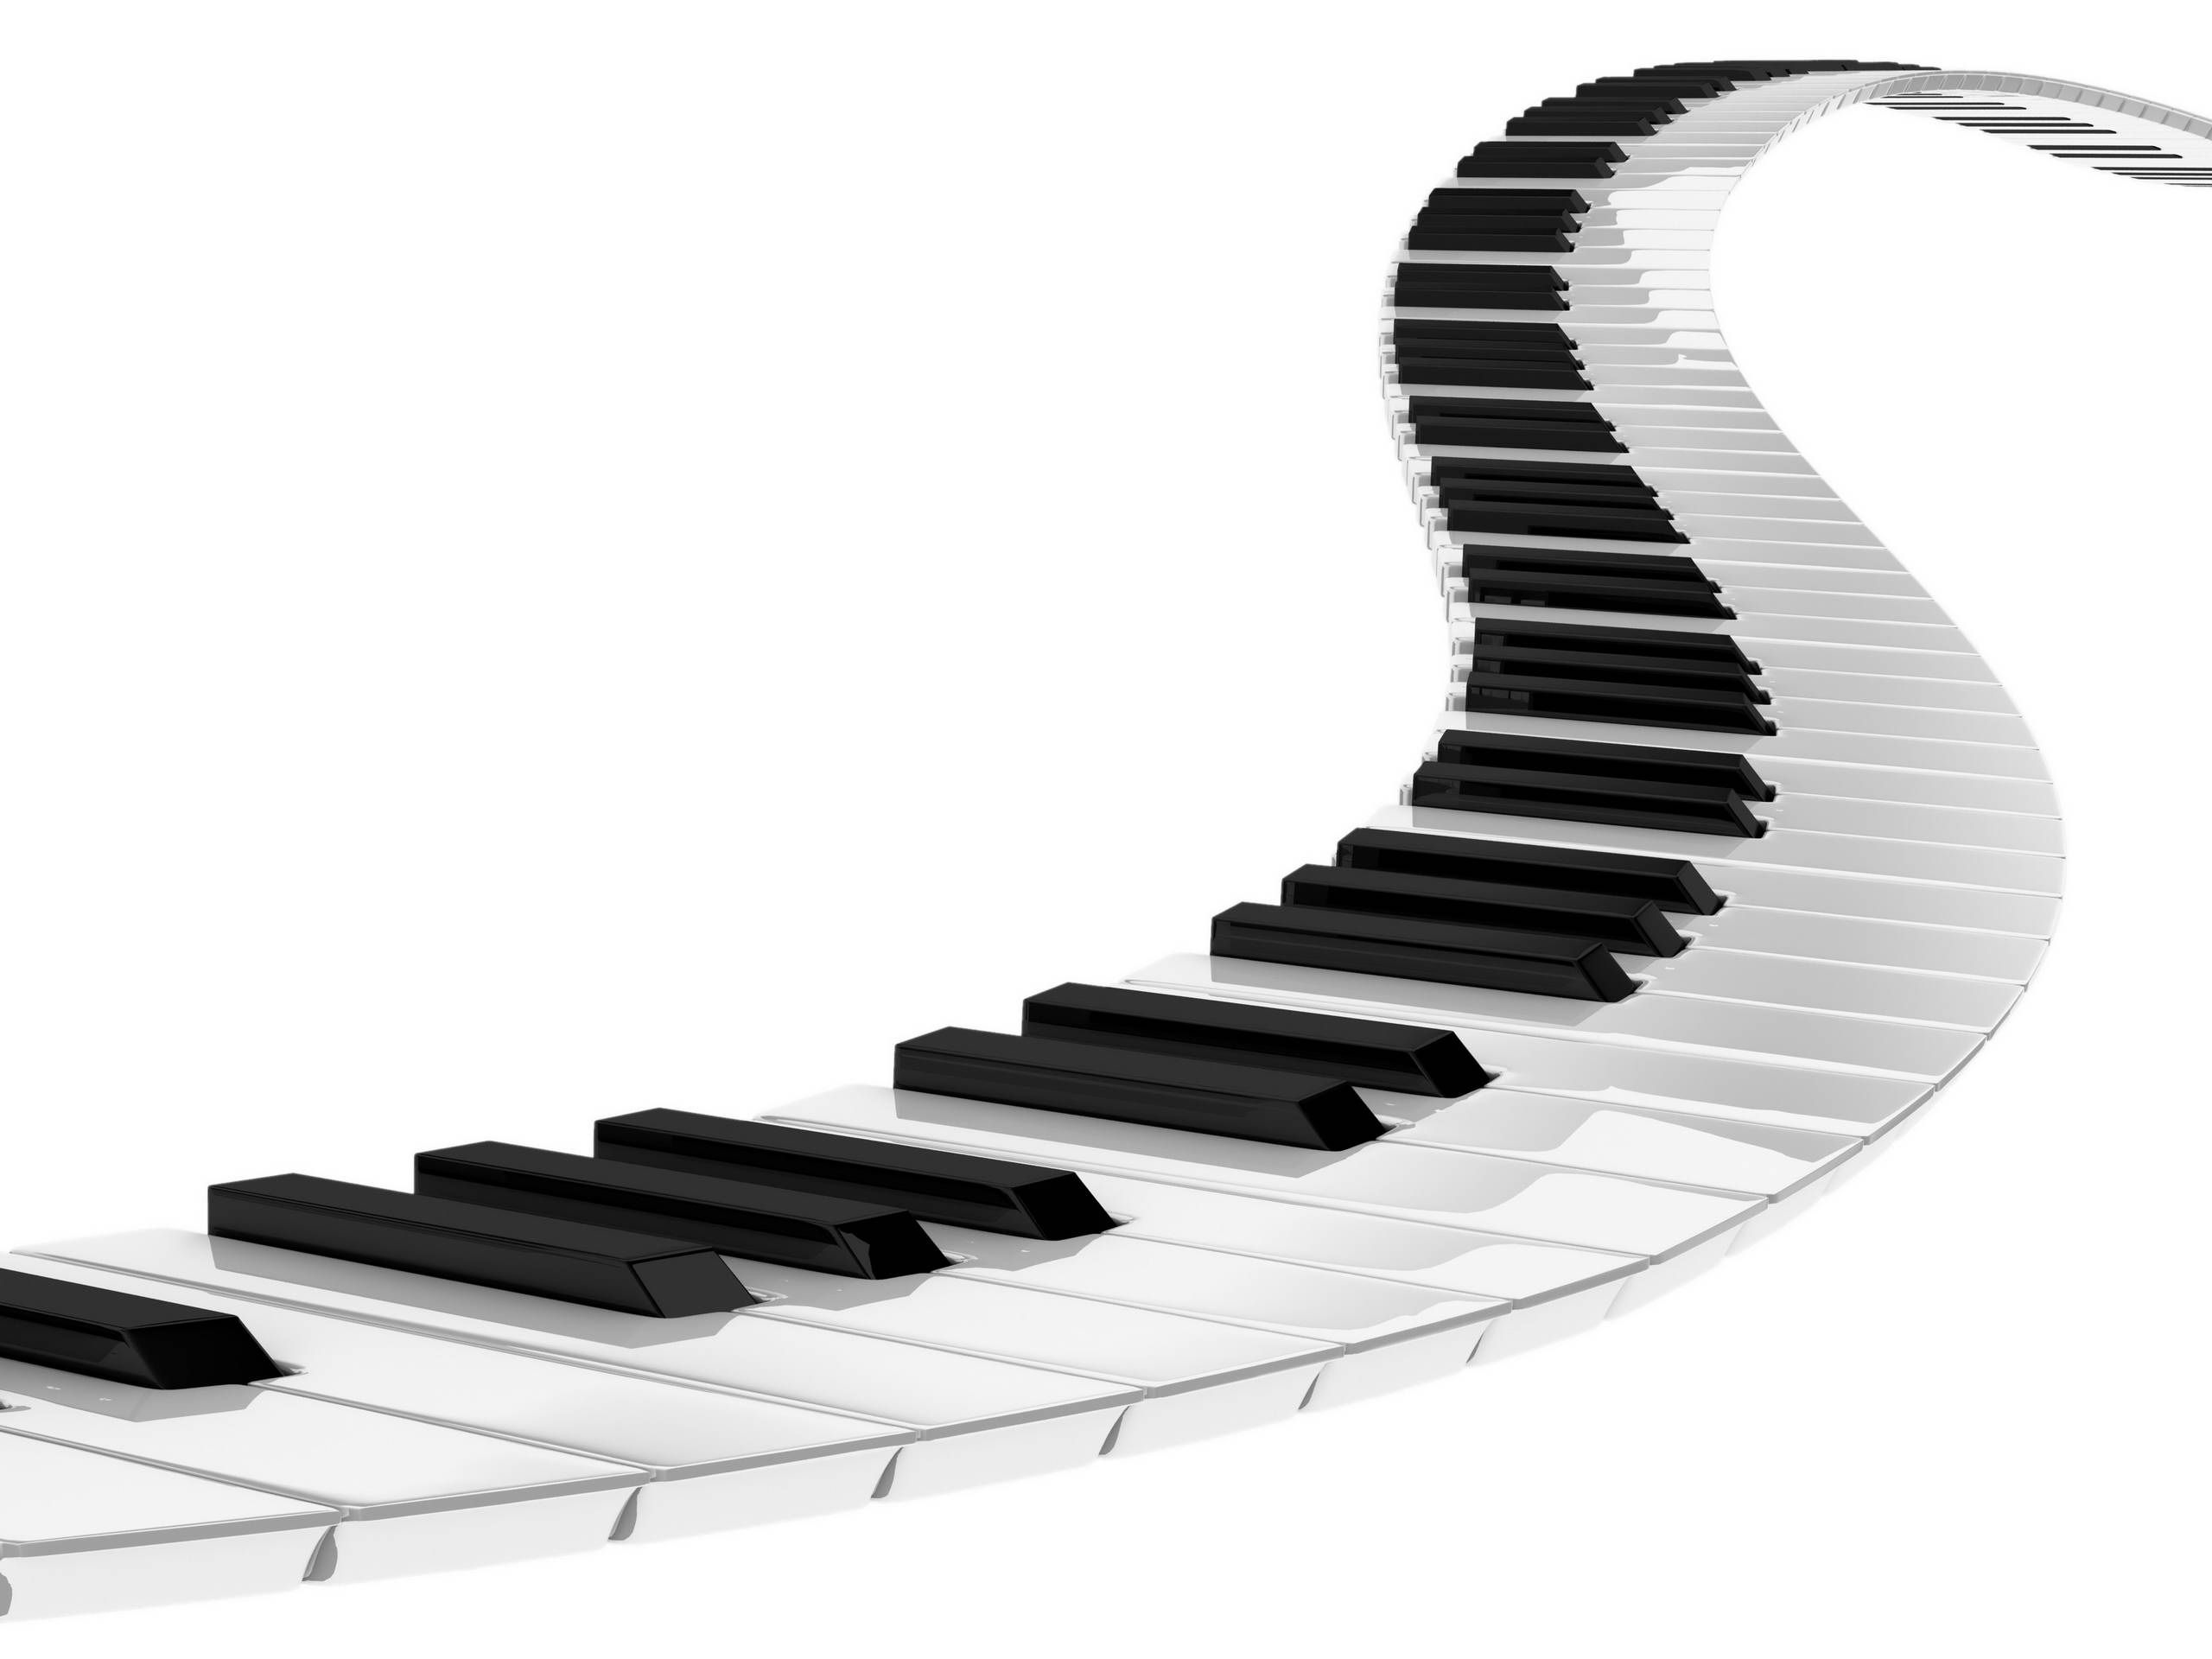 I Love A Piano 2 Music Wallpaper Piano Pictures Piano Music Notes